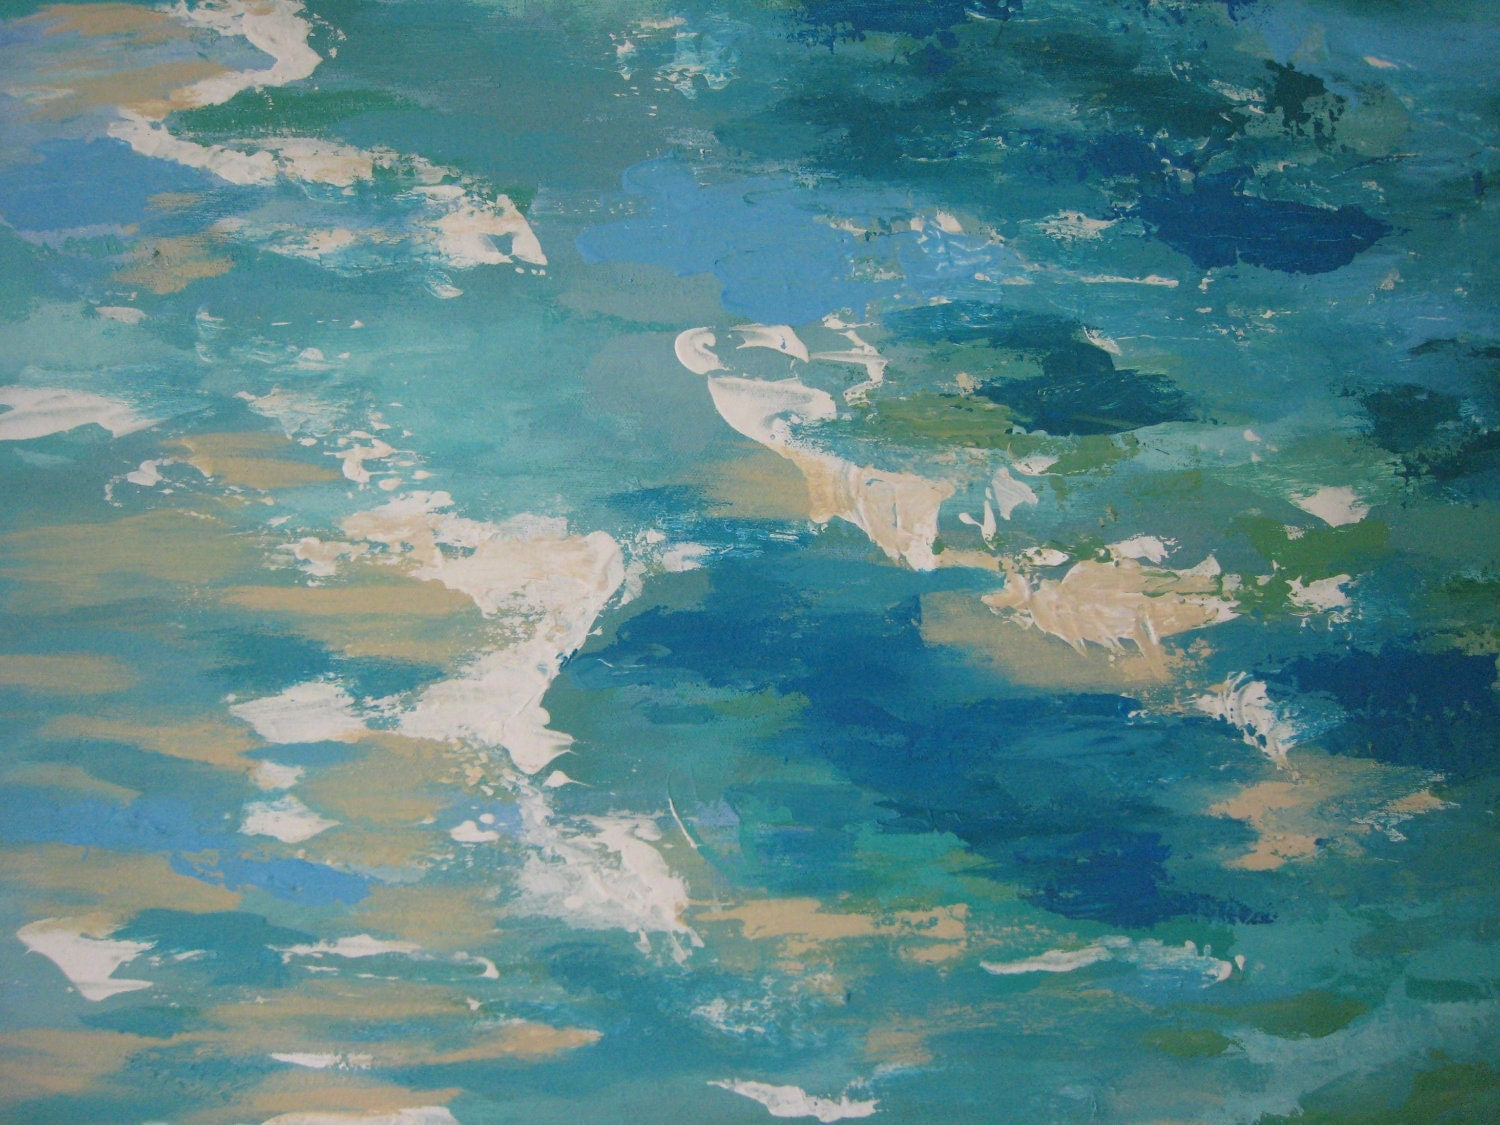 Reserved Abstract Ocean Original textured painting